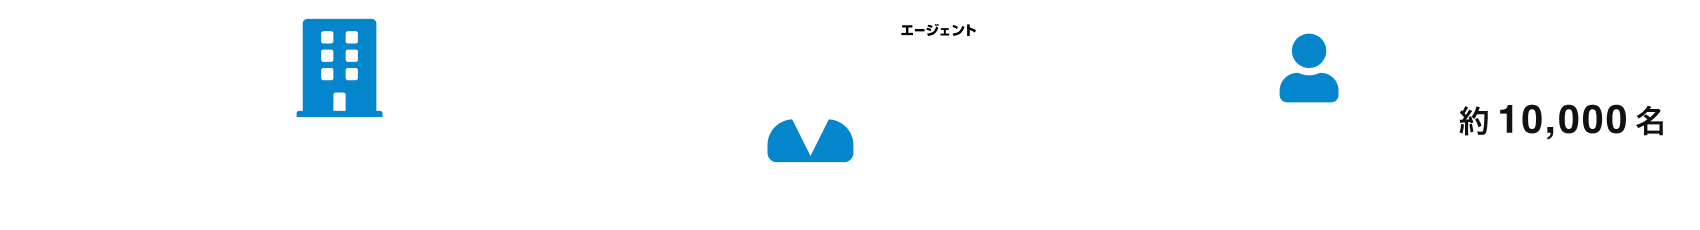 VideoWorks エージェント